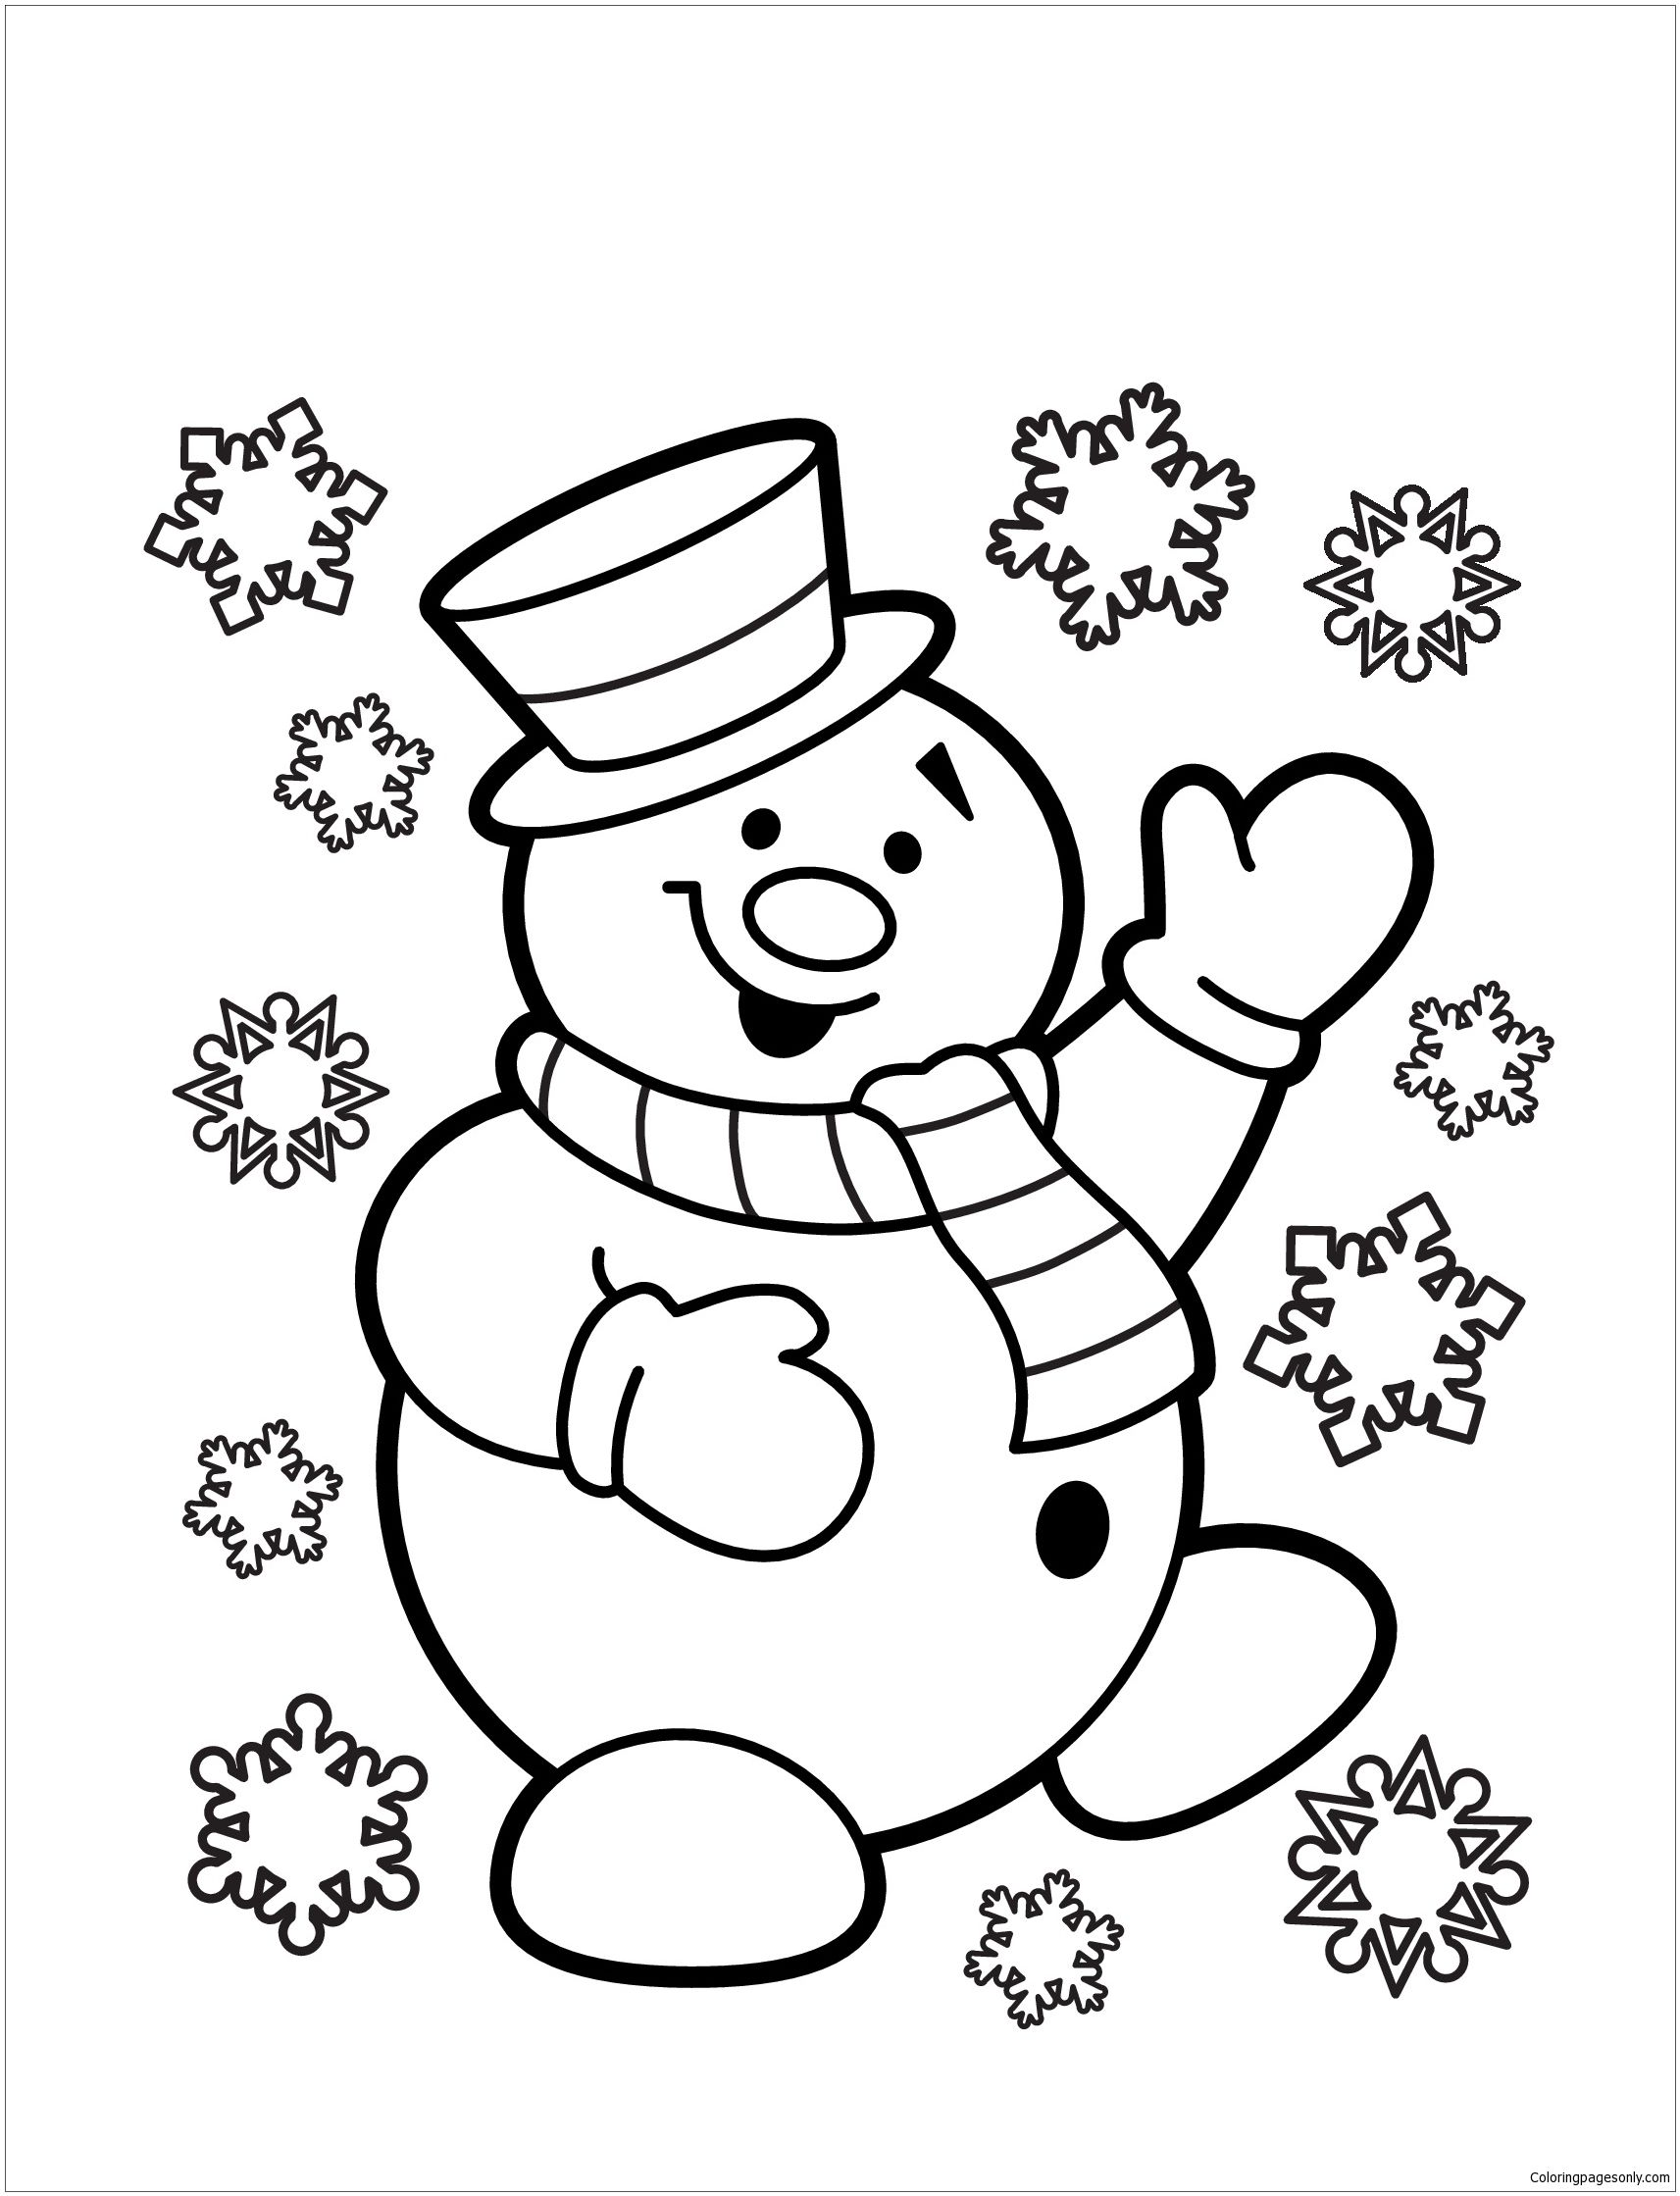 Snowman 3 Coloring Page Free Christmas Coloring Pages Christmas Coloring Sheets Snowman Coloring Pages